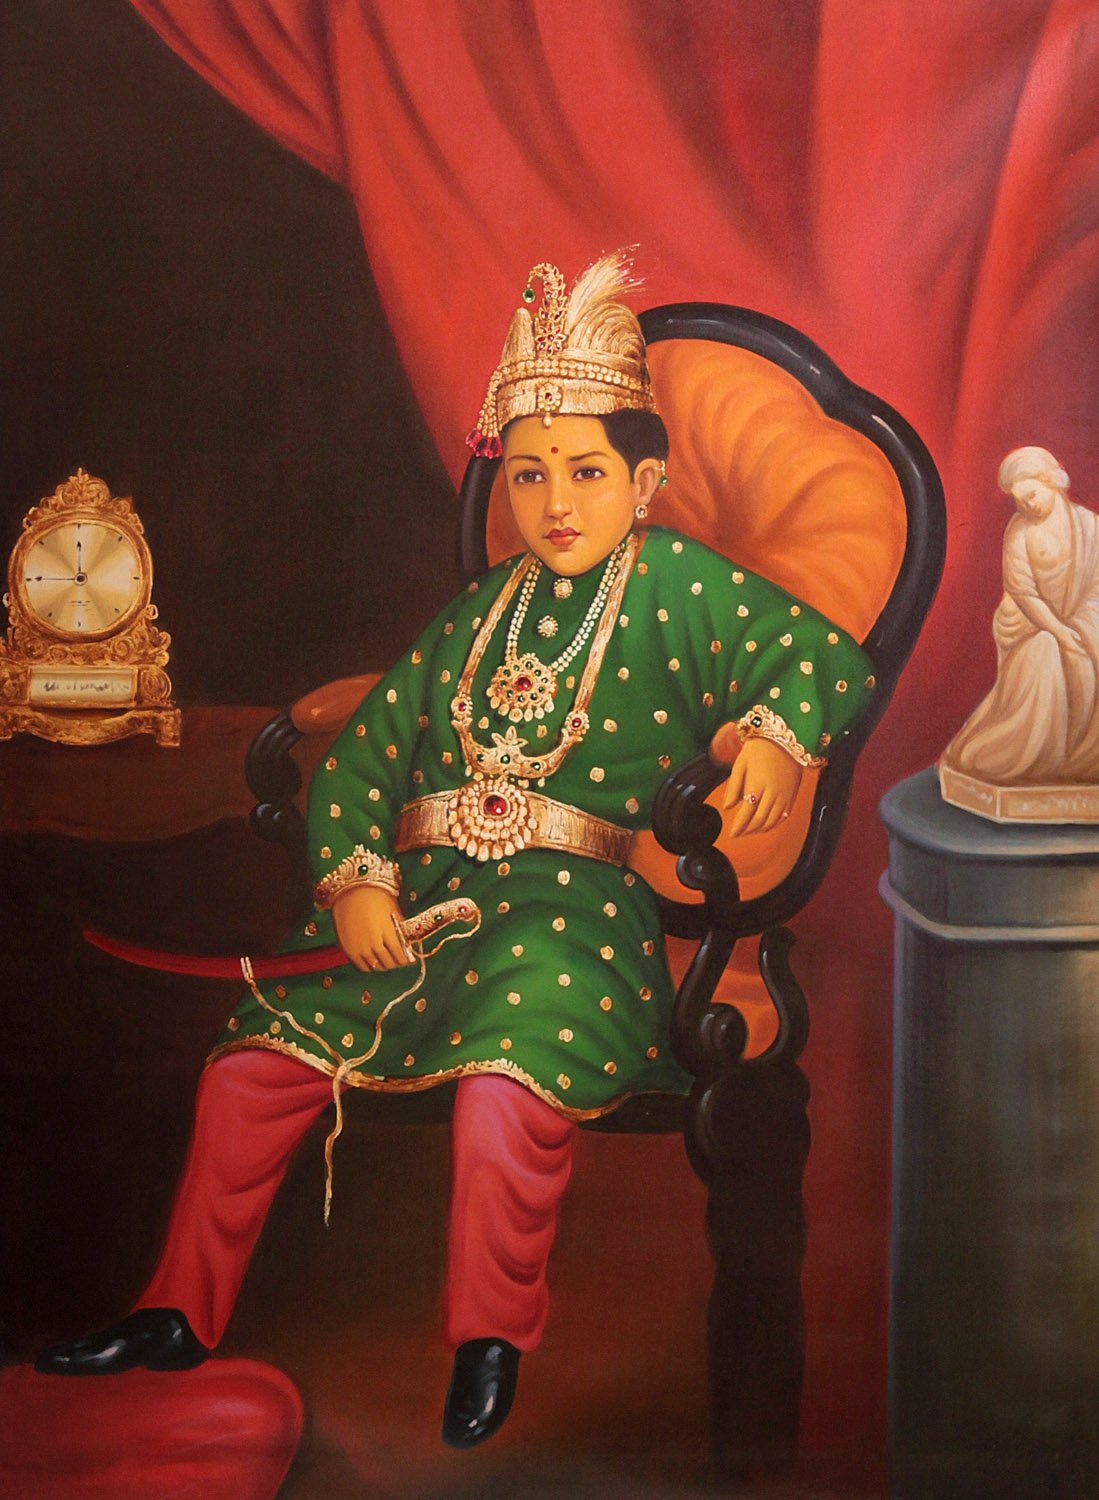 The Portrait of a Young Prince